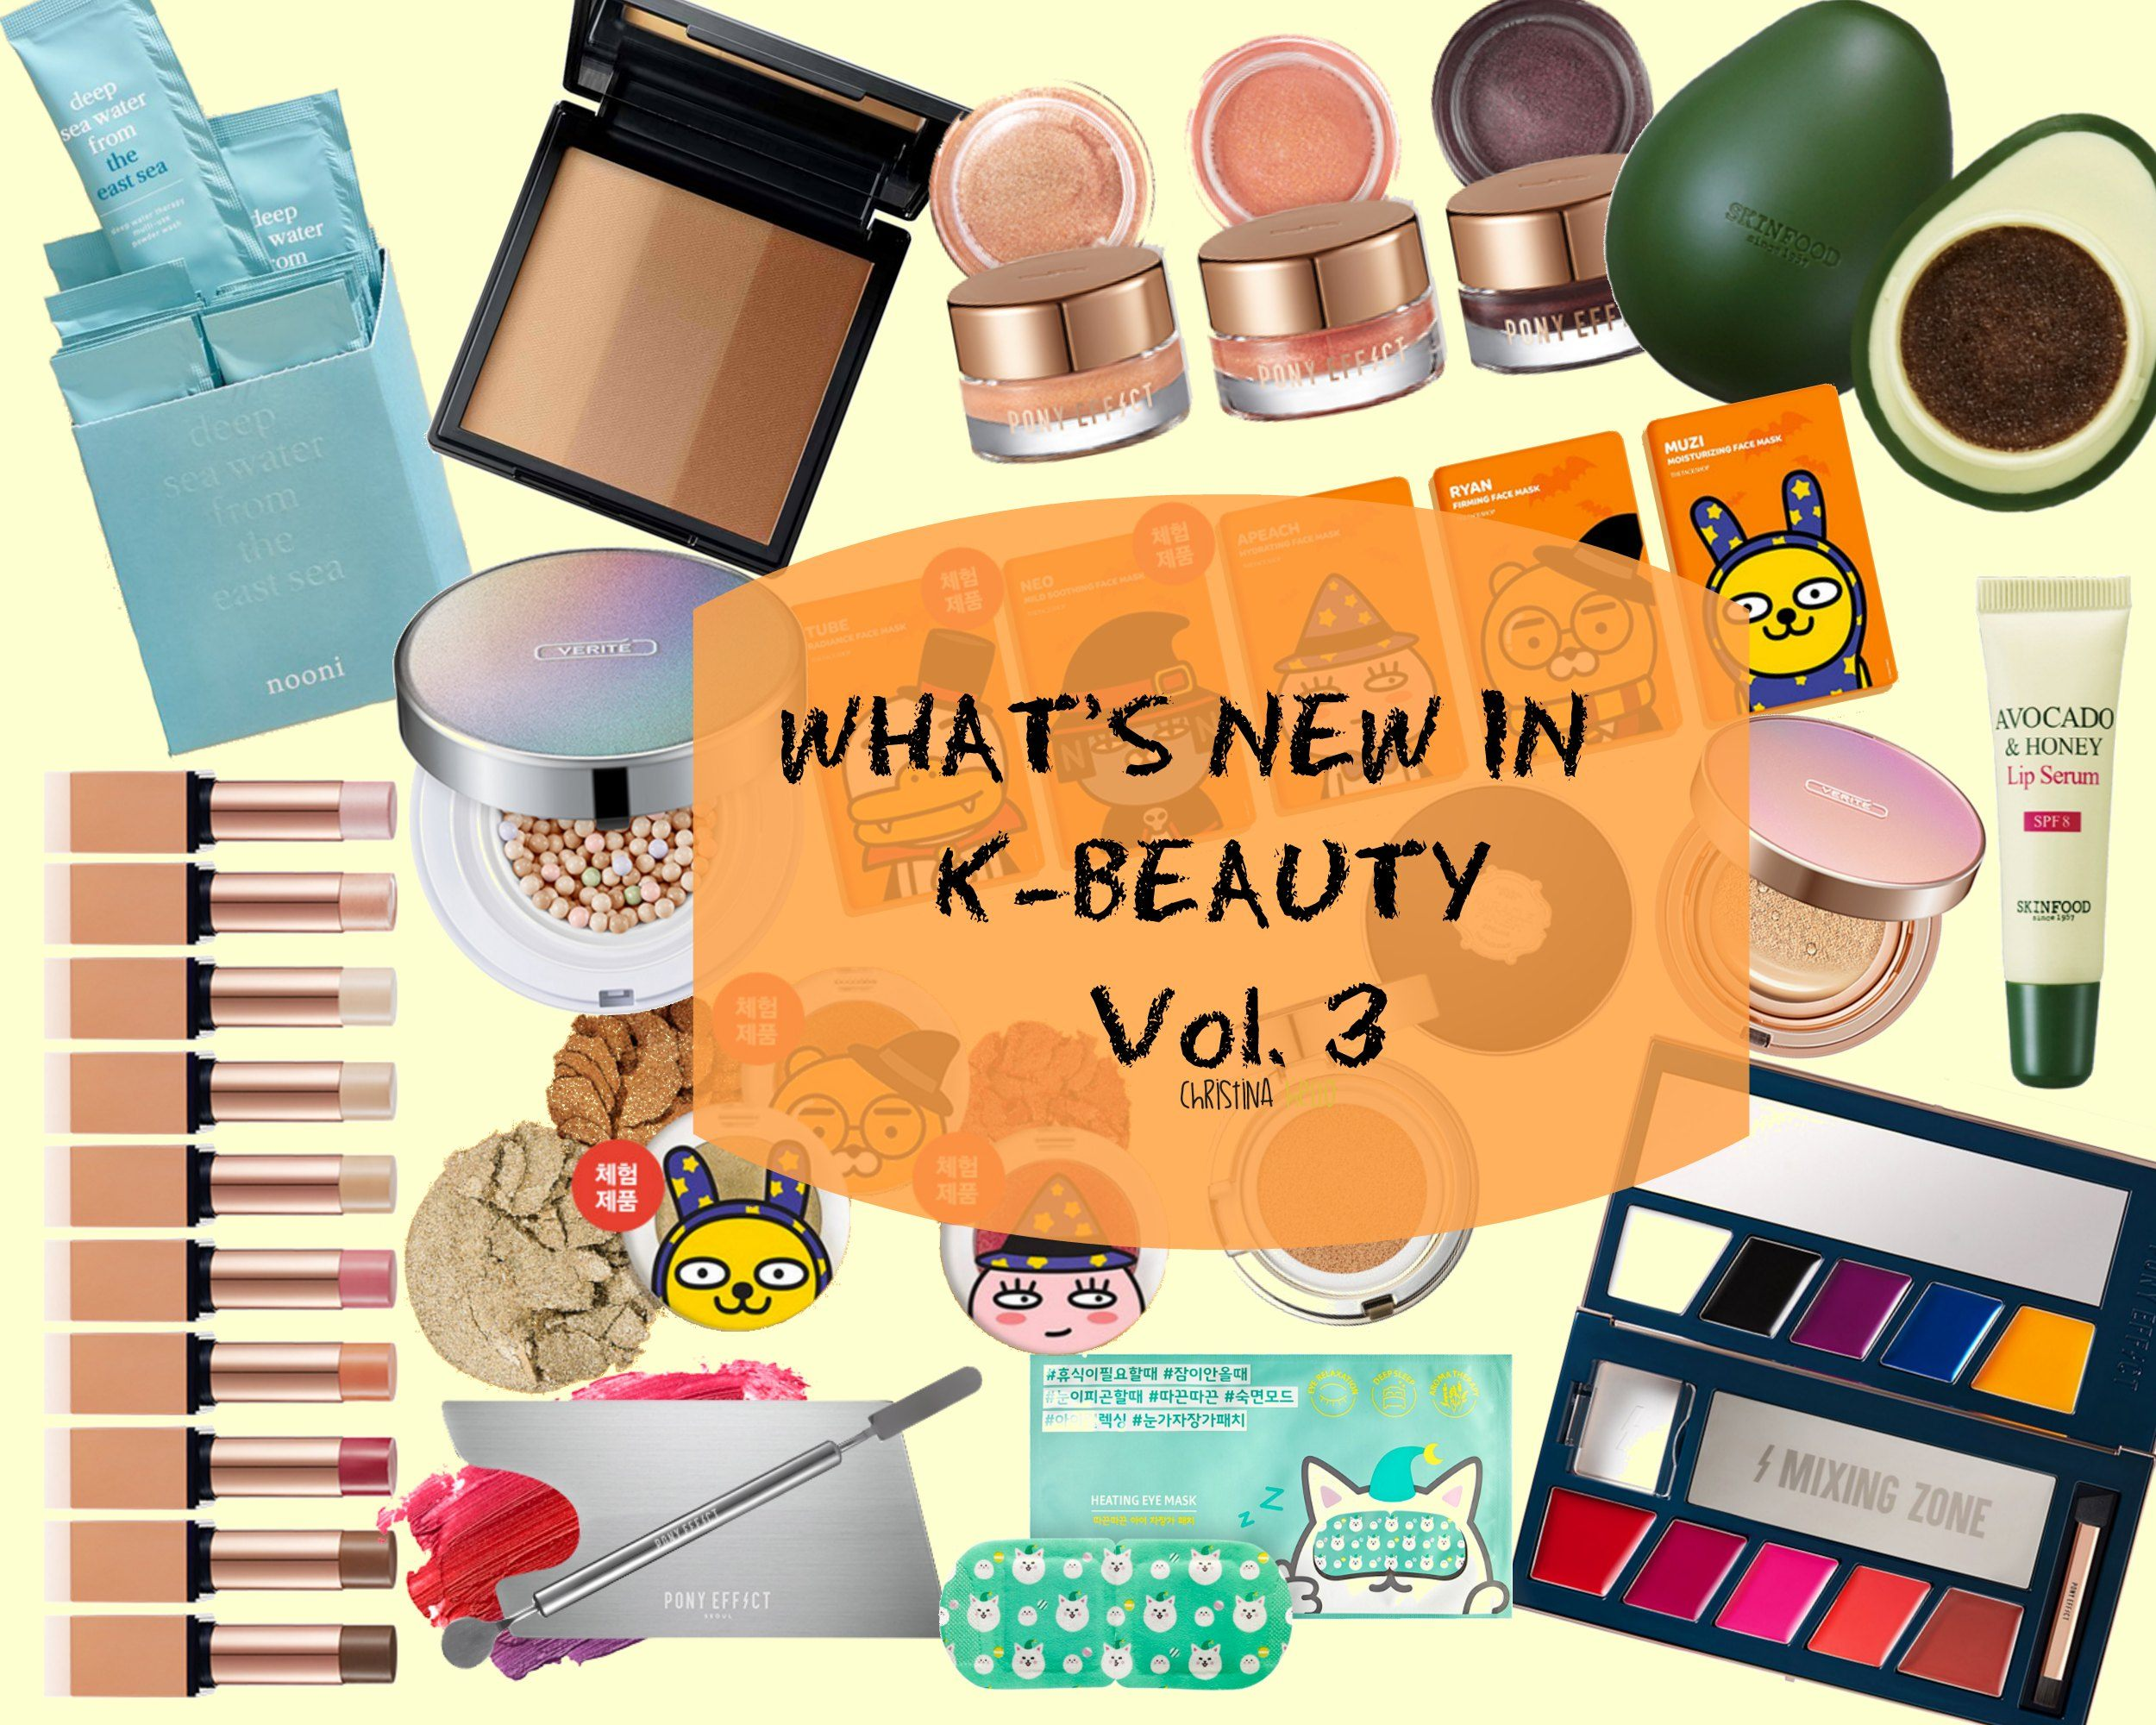 Whats-new-in-K-beauty-3